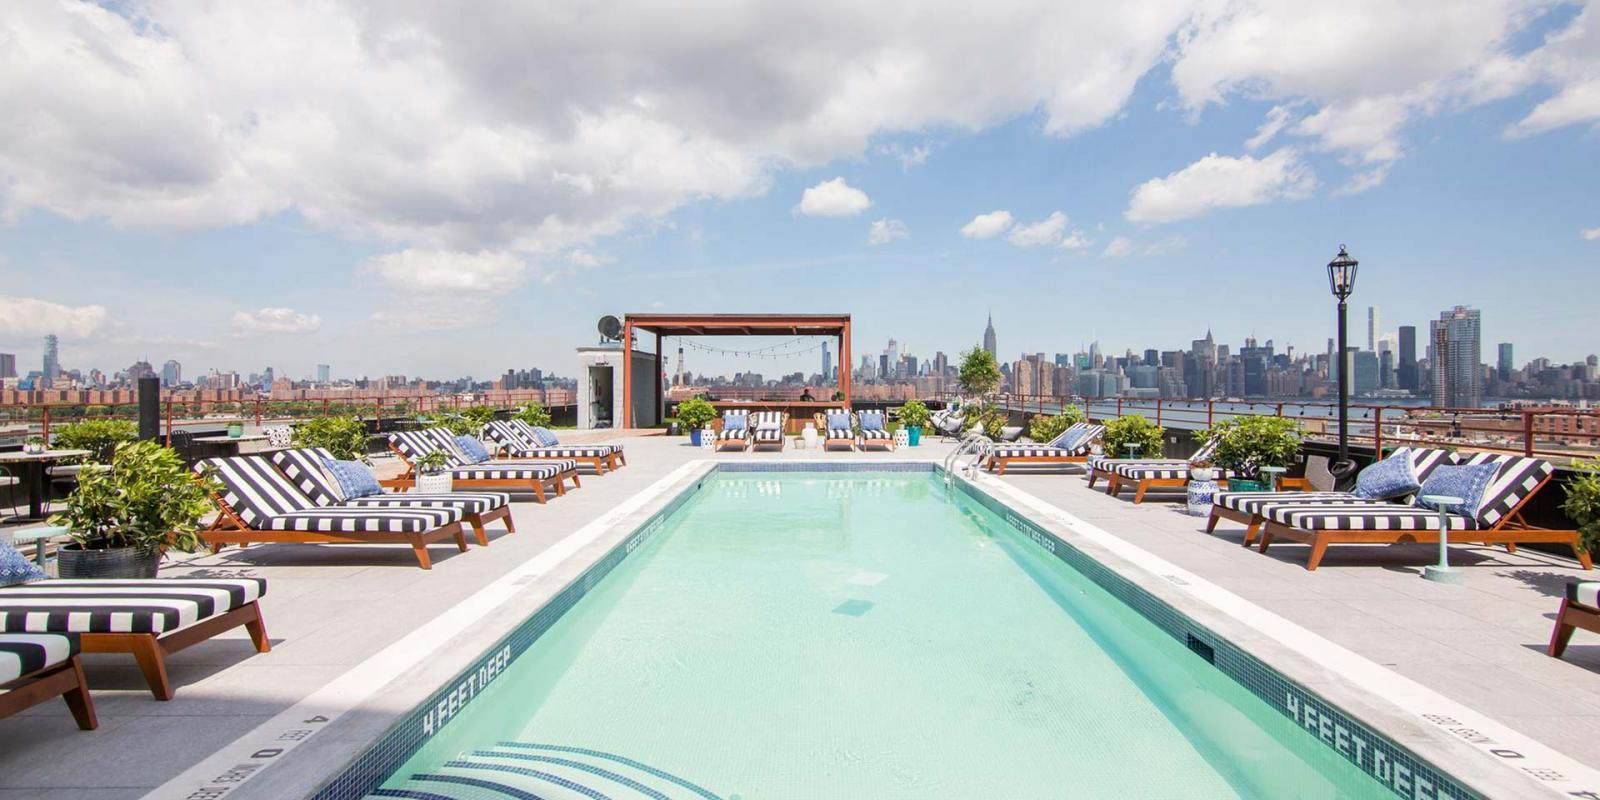 Our 25 Favorite Things To Do in the Summer in NYC 2019 •